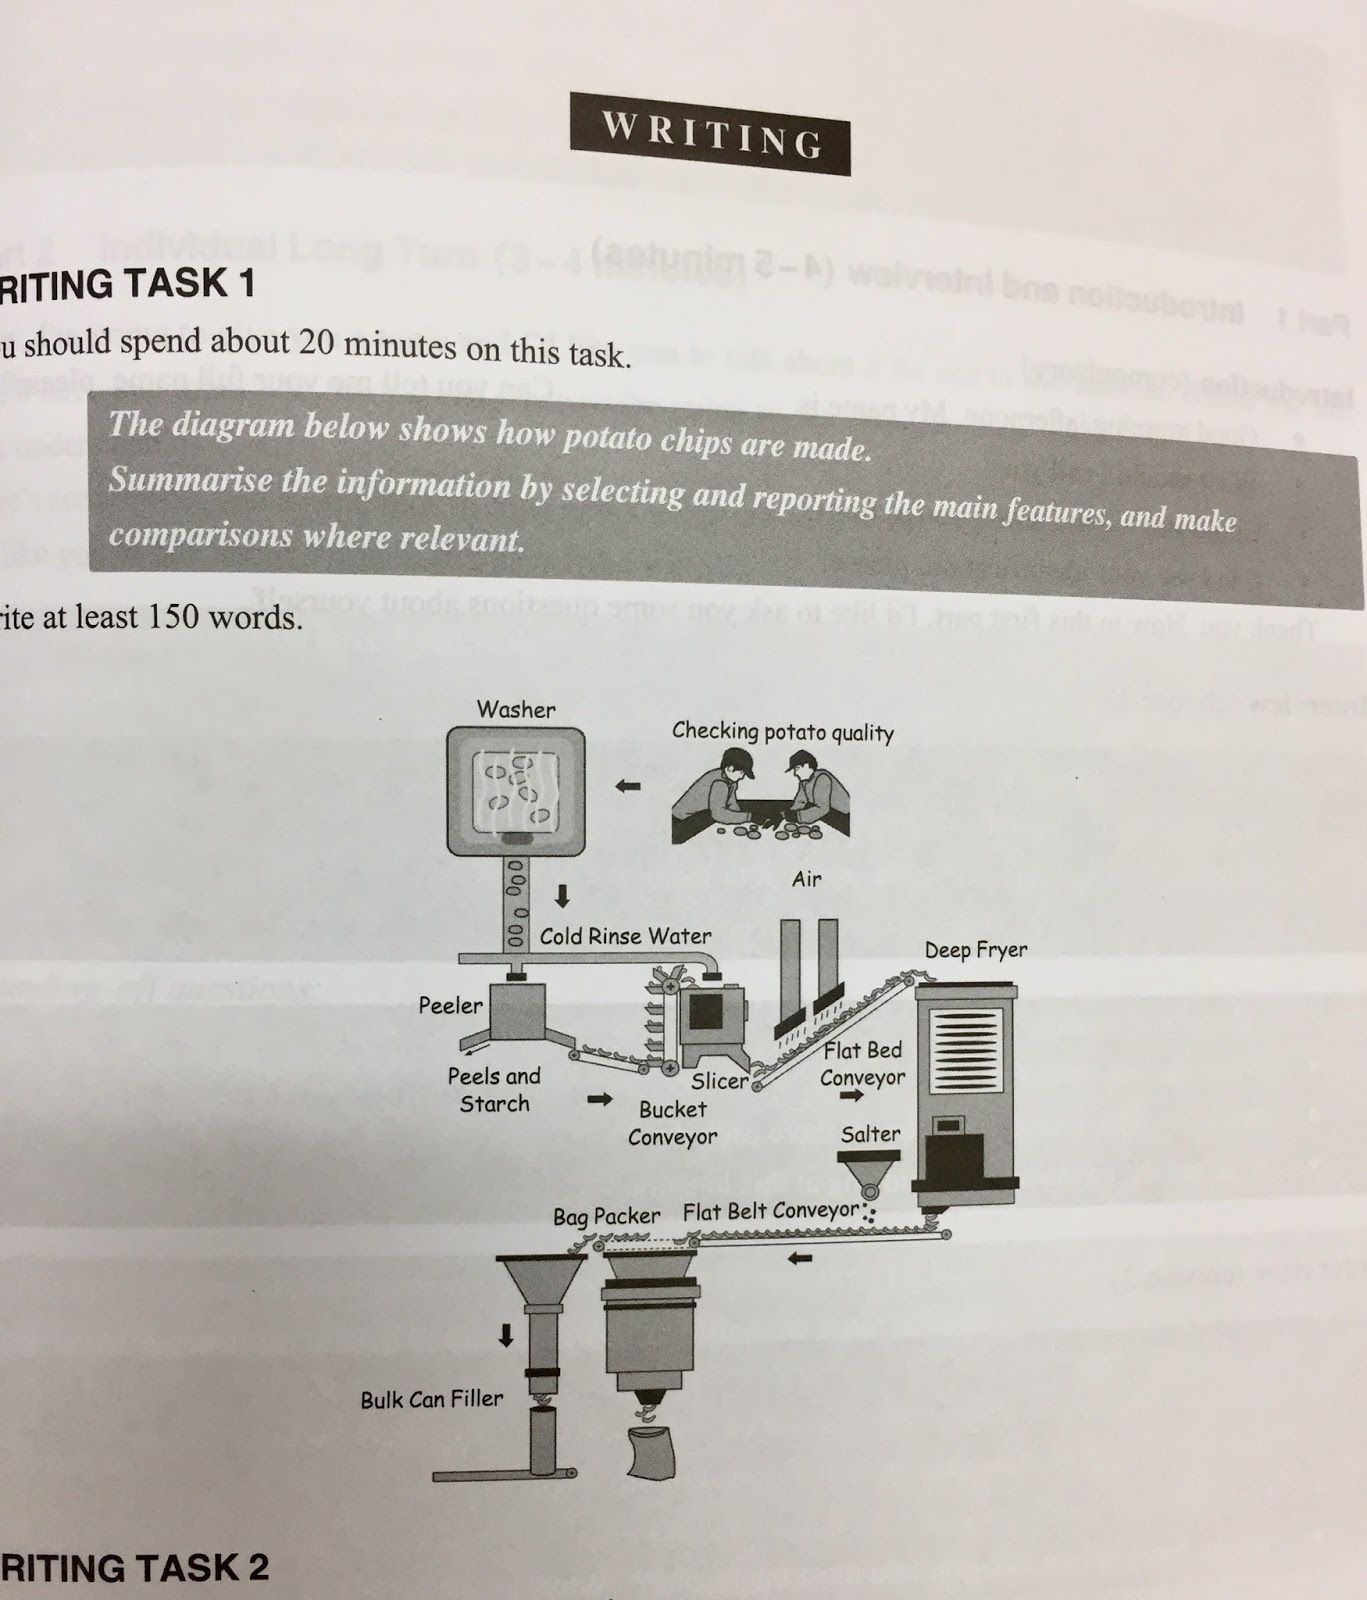 Free sample ielts writing blog task 1 diagram of how potato chips the illustrations display the process of converting potatoes into potato chips through a simple approach with the aid of some machines ccuart Choice Image